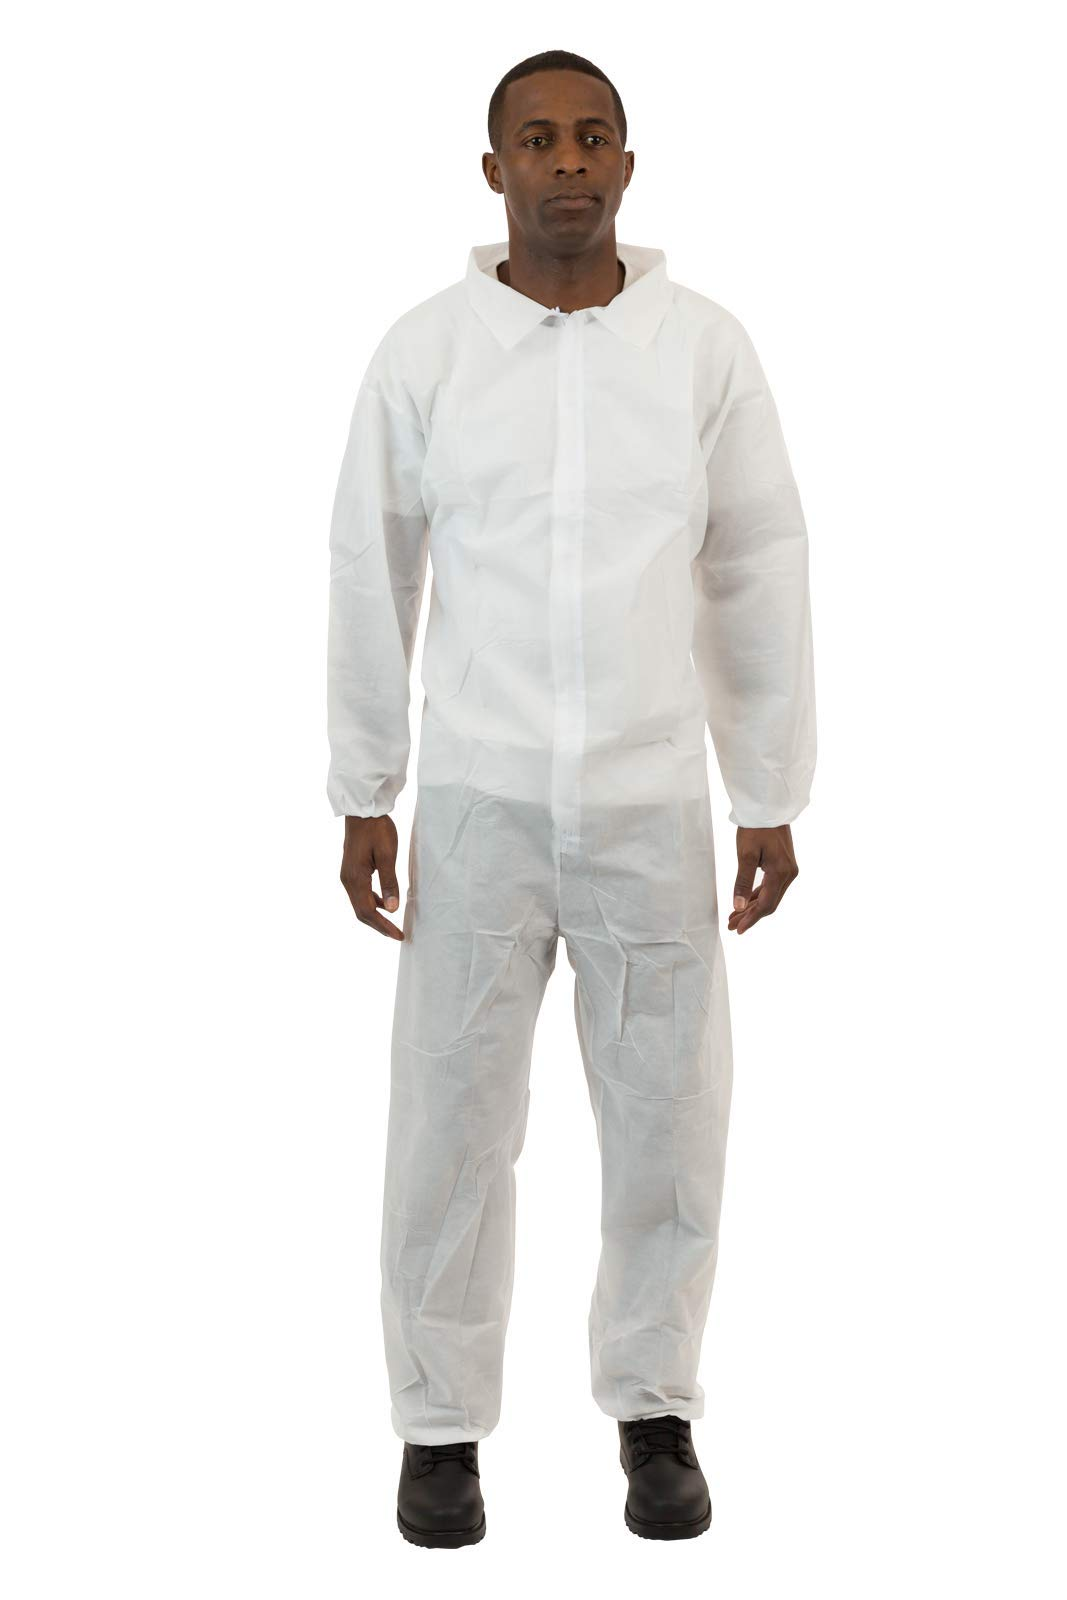 International Enviroguard - Lightweight 3 Layer SMS General Protective Coverall for General Cleanup (White) Elastic Wrist & Ankle, M, (25 per case) by International Enviroguard